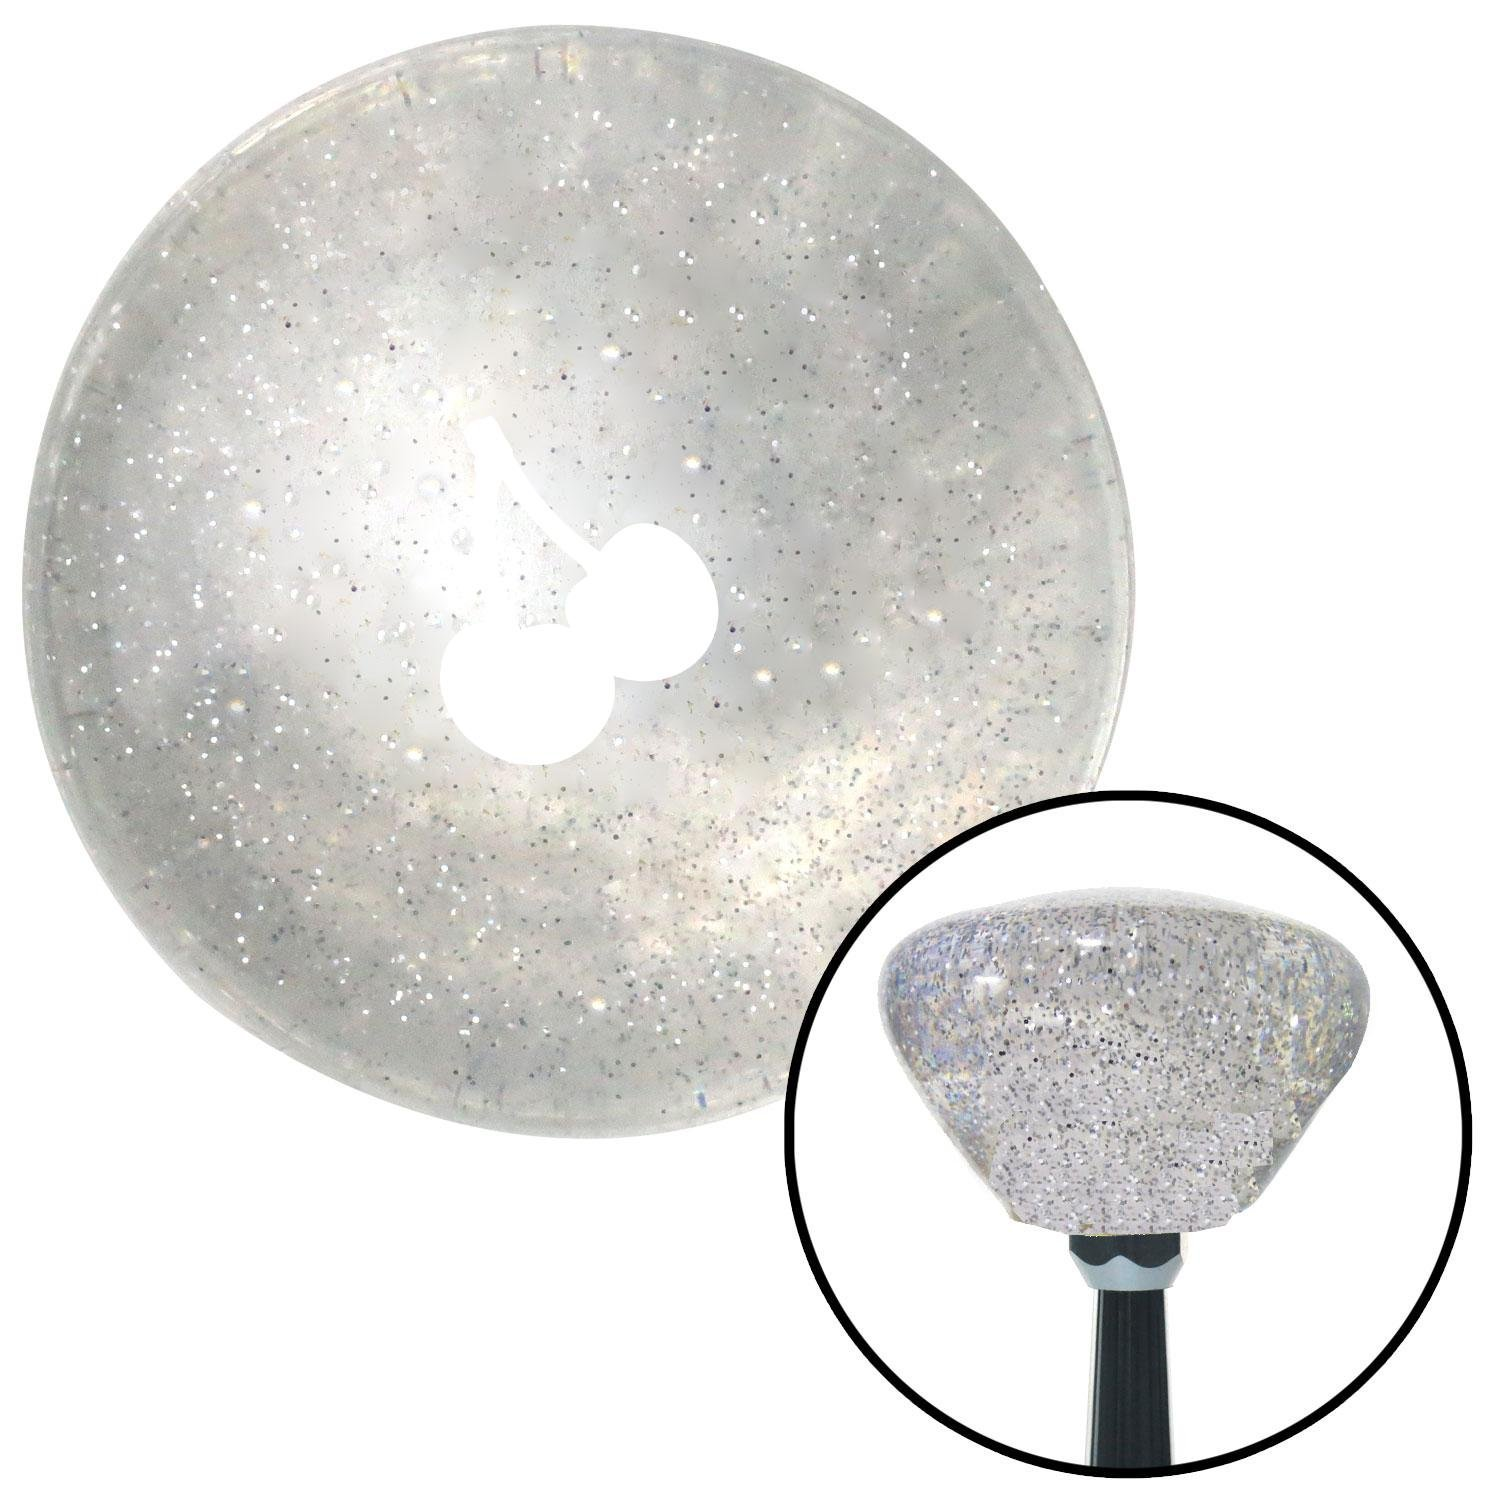 White Cherries Silhouette Clear Retro Metal Flake with M16 x 1.5 Insert American Shifter 285746 Shift Knob